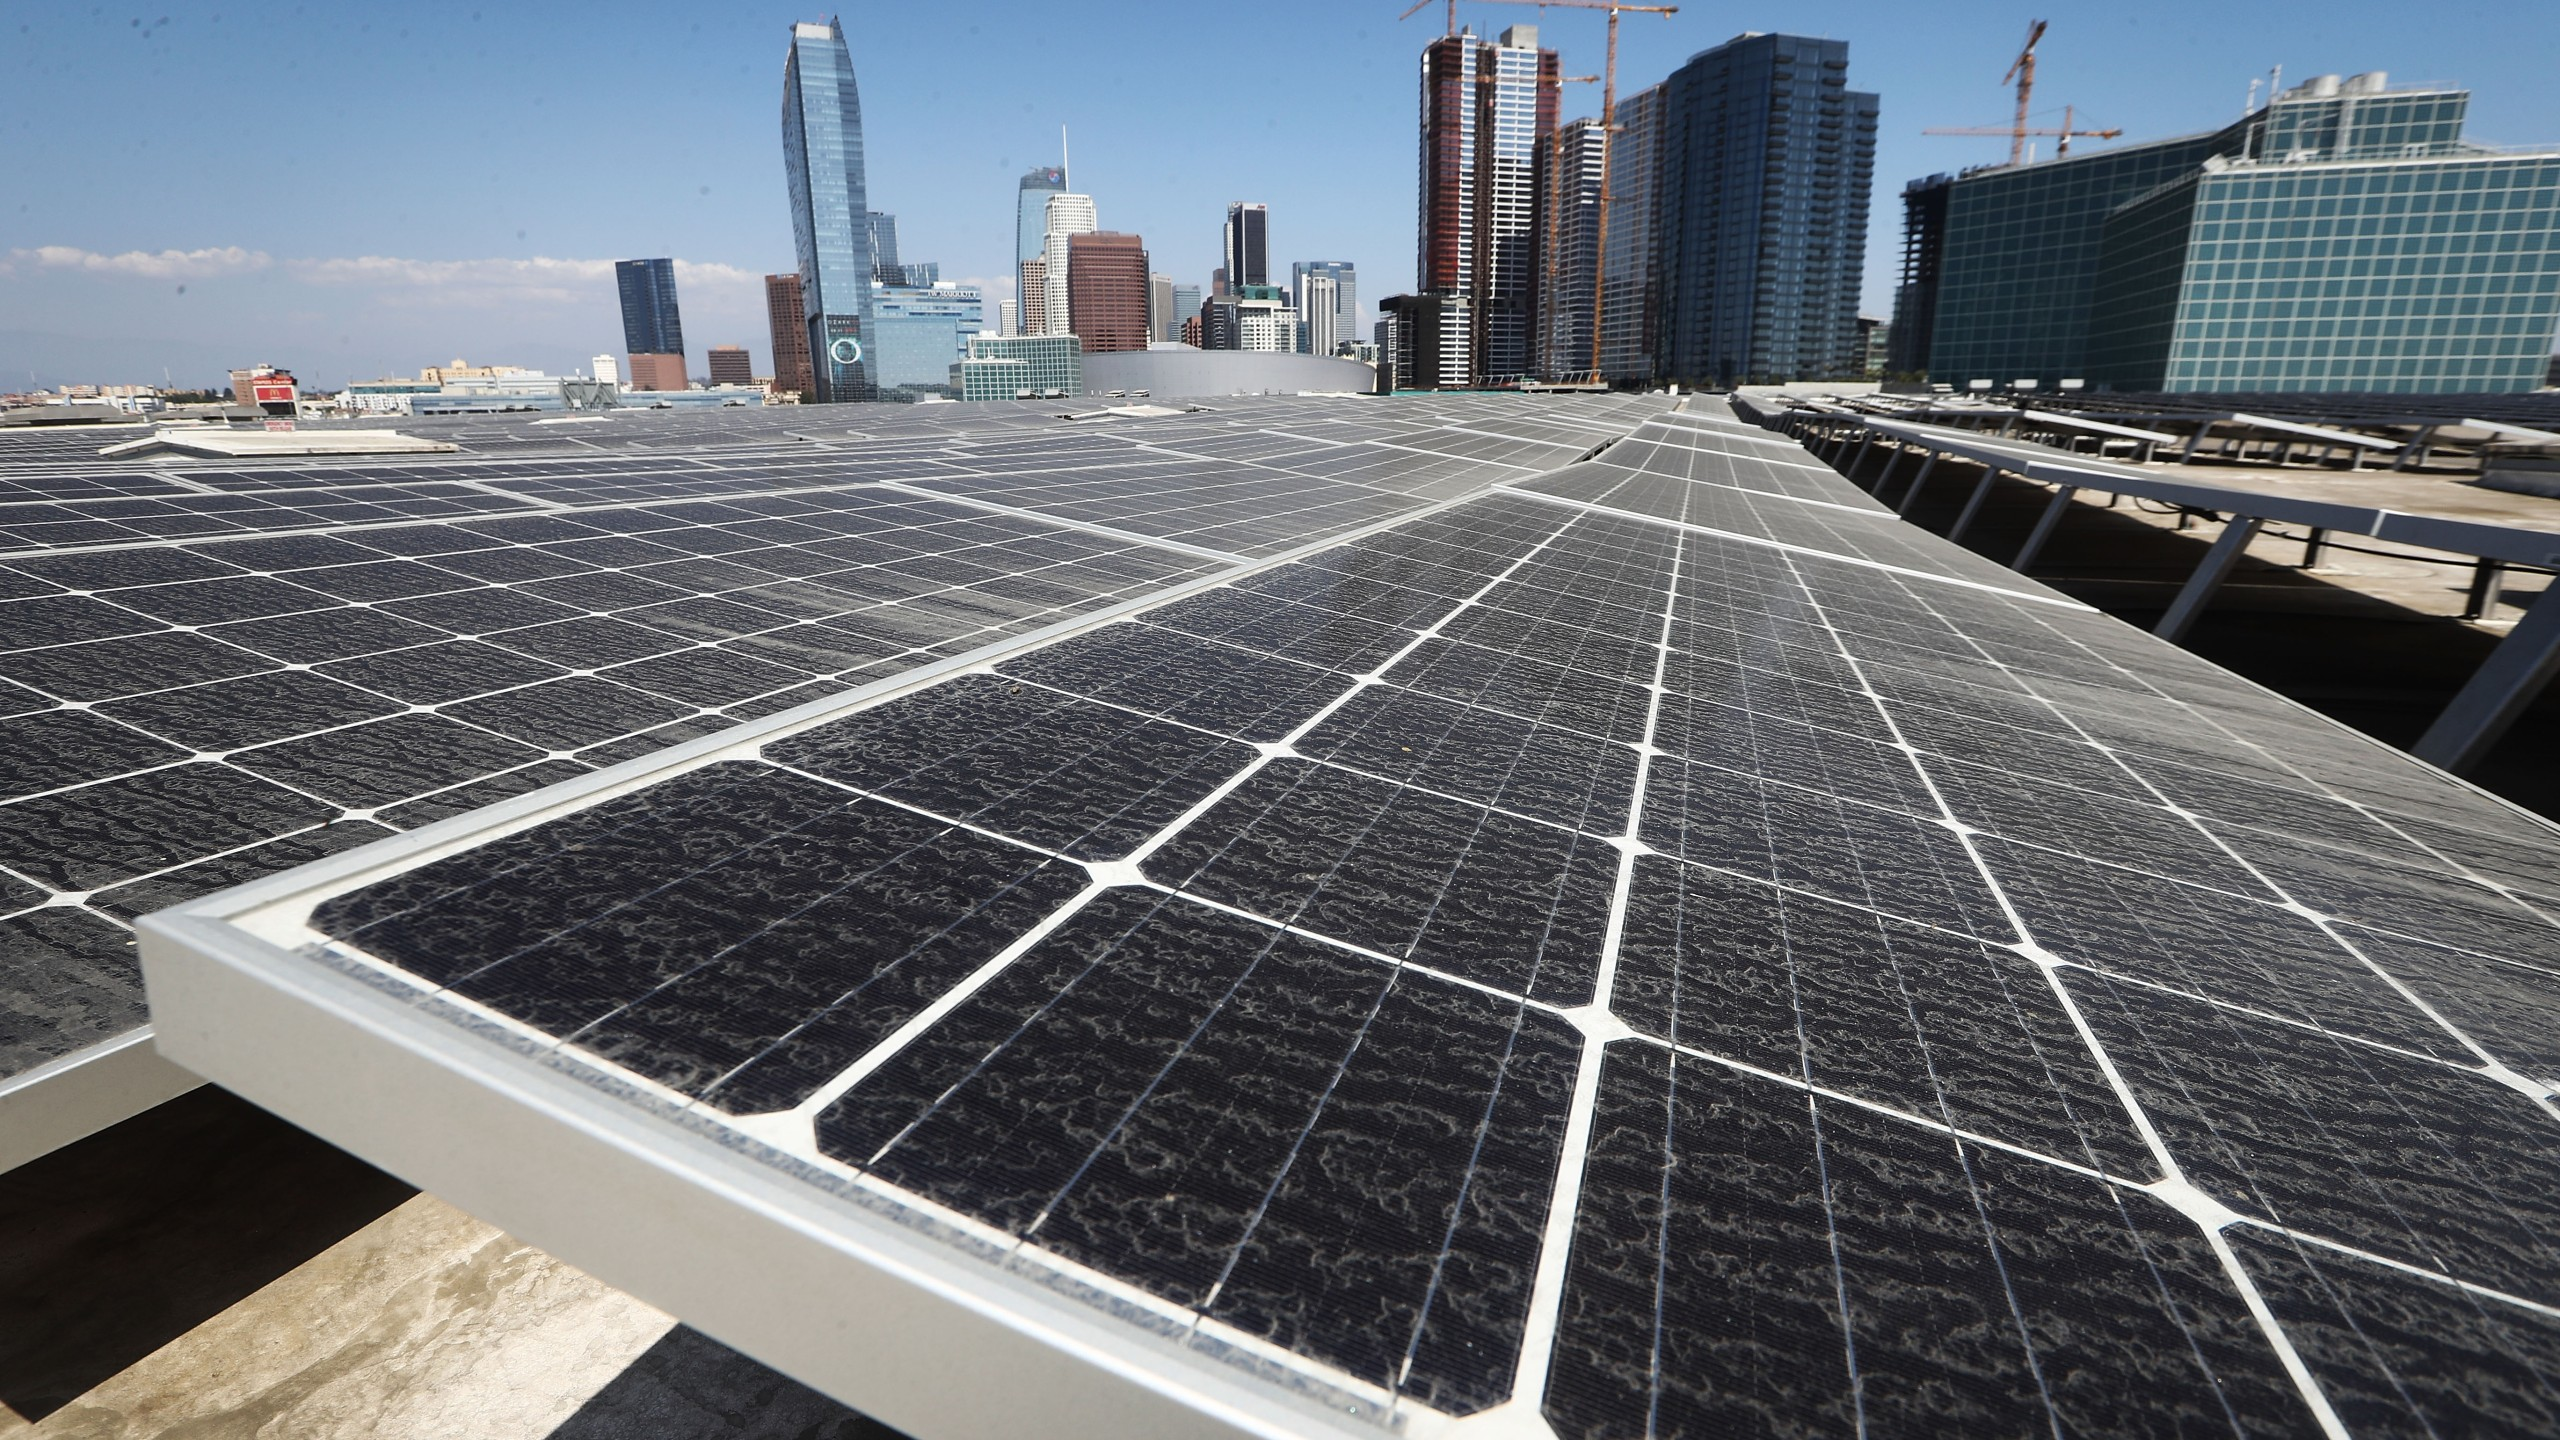 Solar panels are mounted atop the roof of the Los Angeles Convention Center on Sept. 5, 2018. (Credit: Mario Tama / Getty Images)